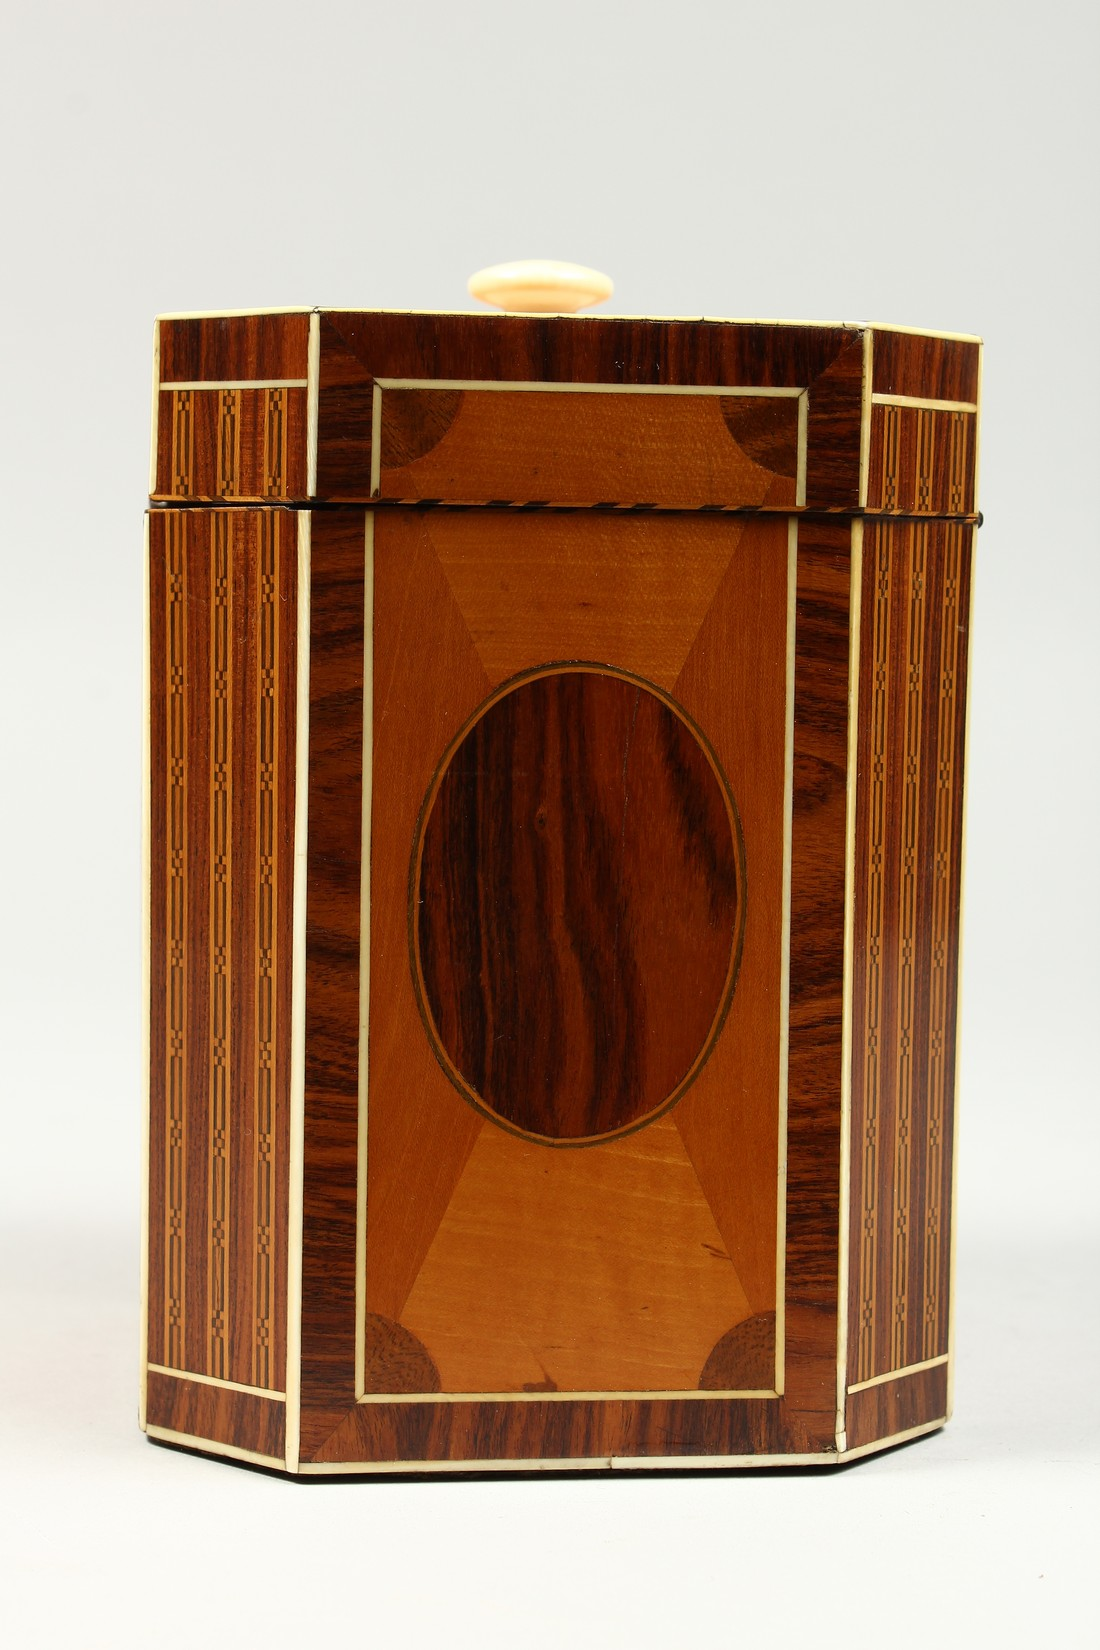 A SUPERB GEORGE III SATINWOOD BANDED TEA CADDY with rosewood and ivory canted corners and ivory - Image 5 of 9